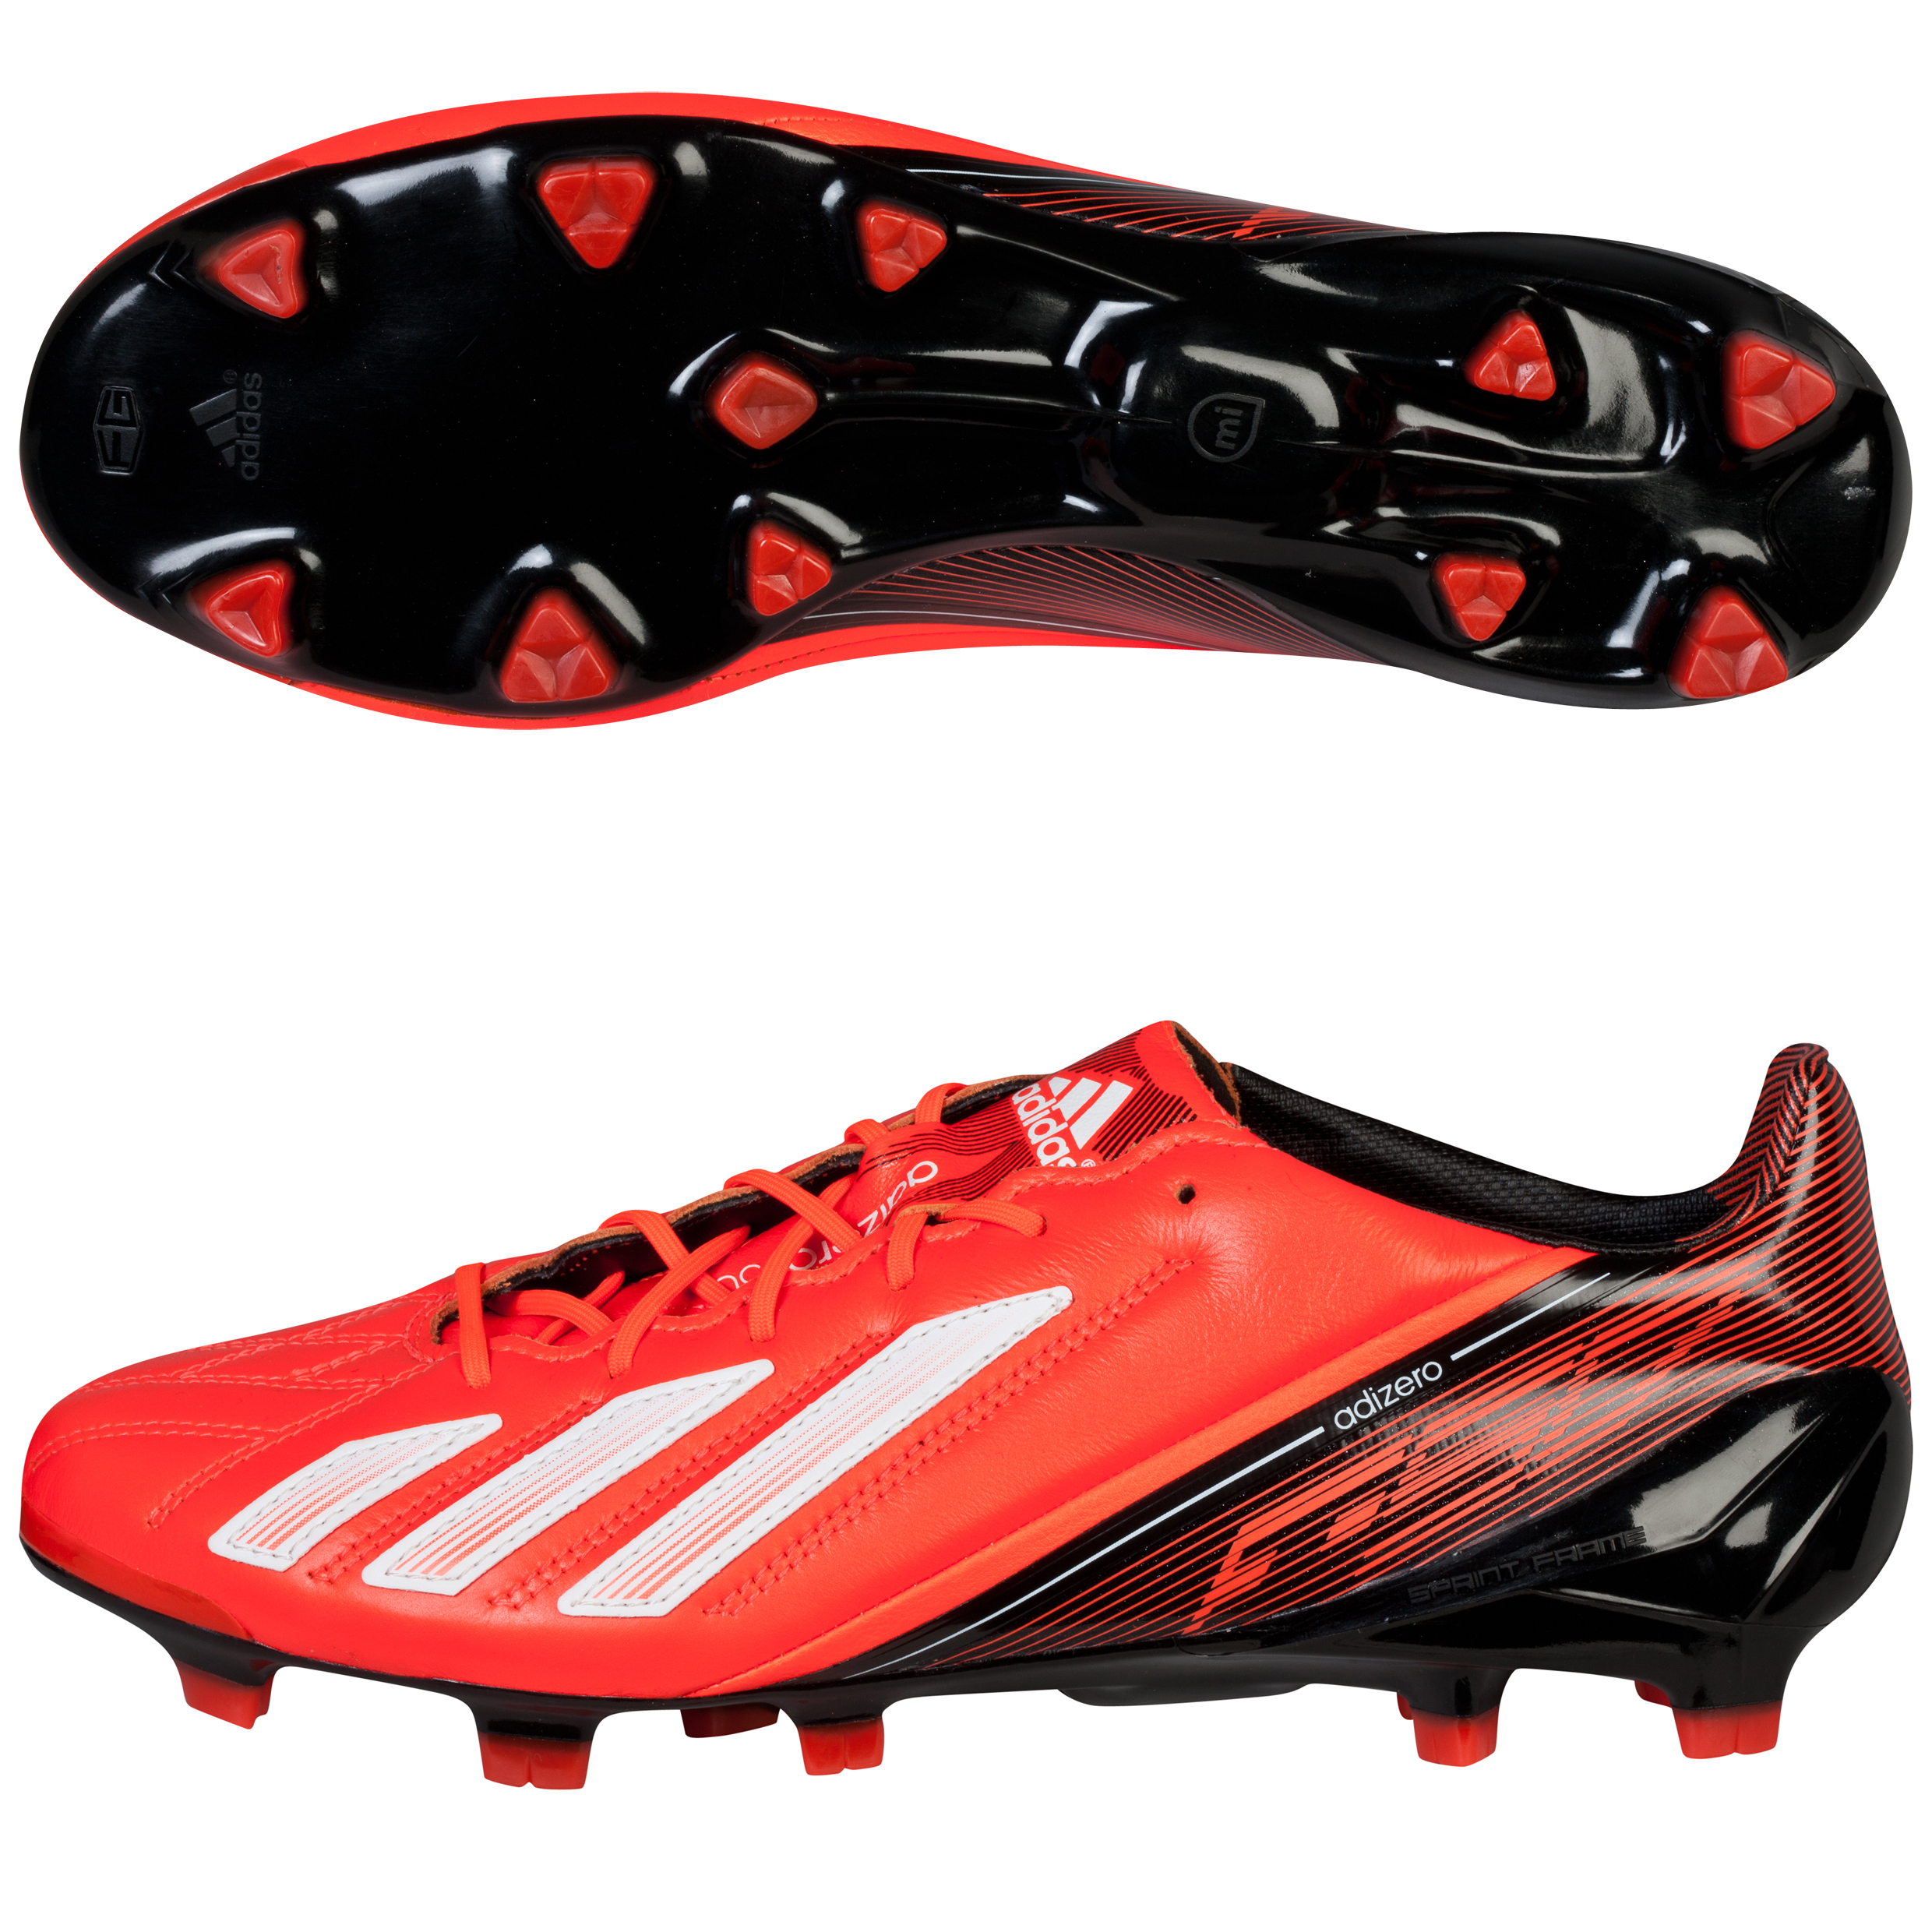 Adidas adizero F50 TRX Leather Firm Ground Football Boots Red